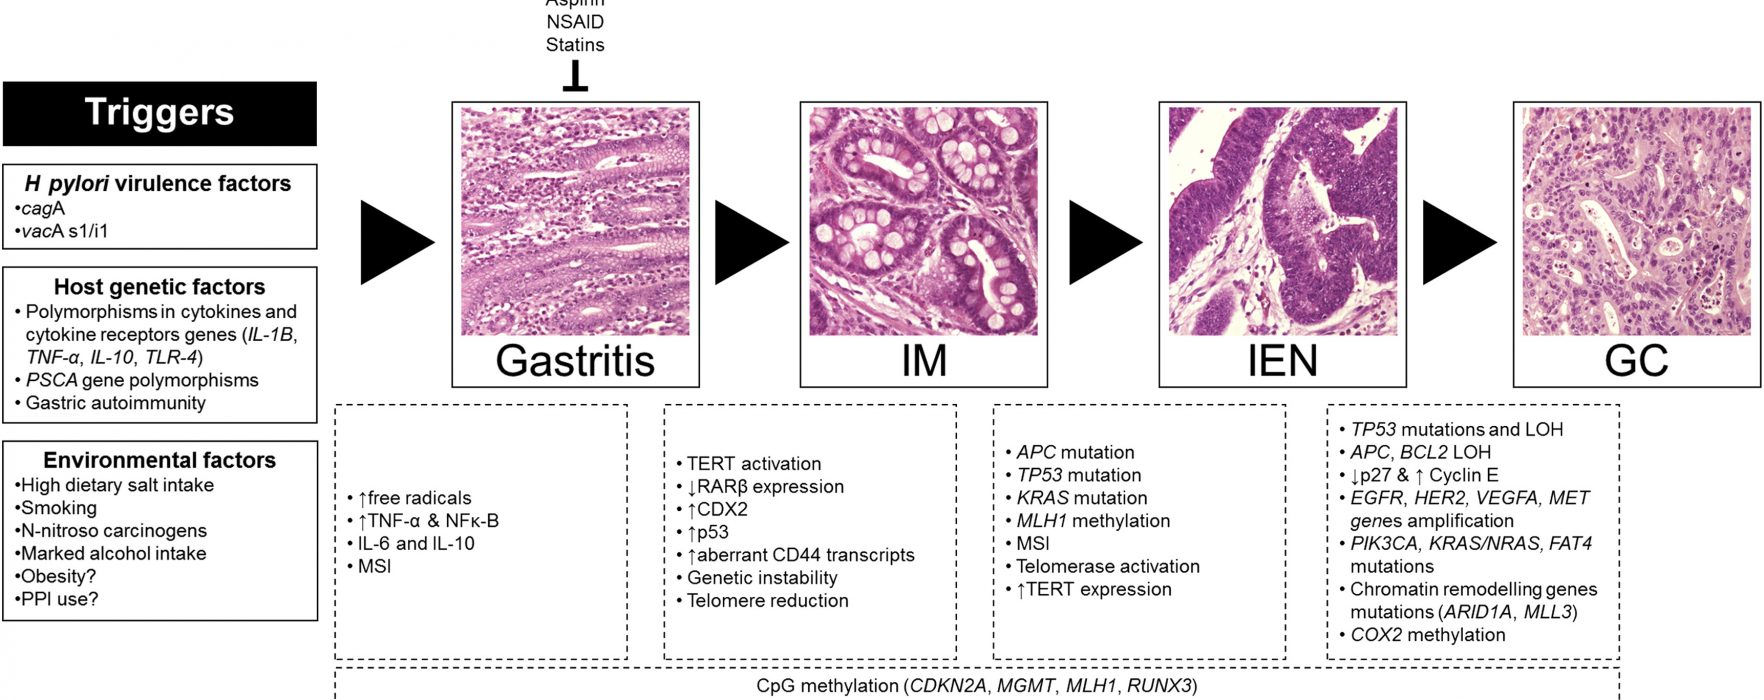 Review: Pathogenesis and Prevention of Gastric Cancer